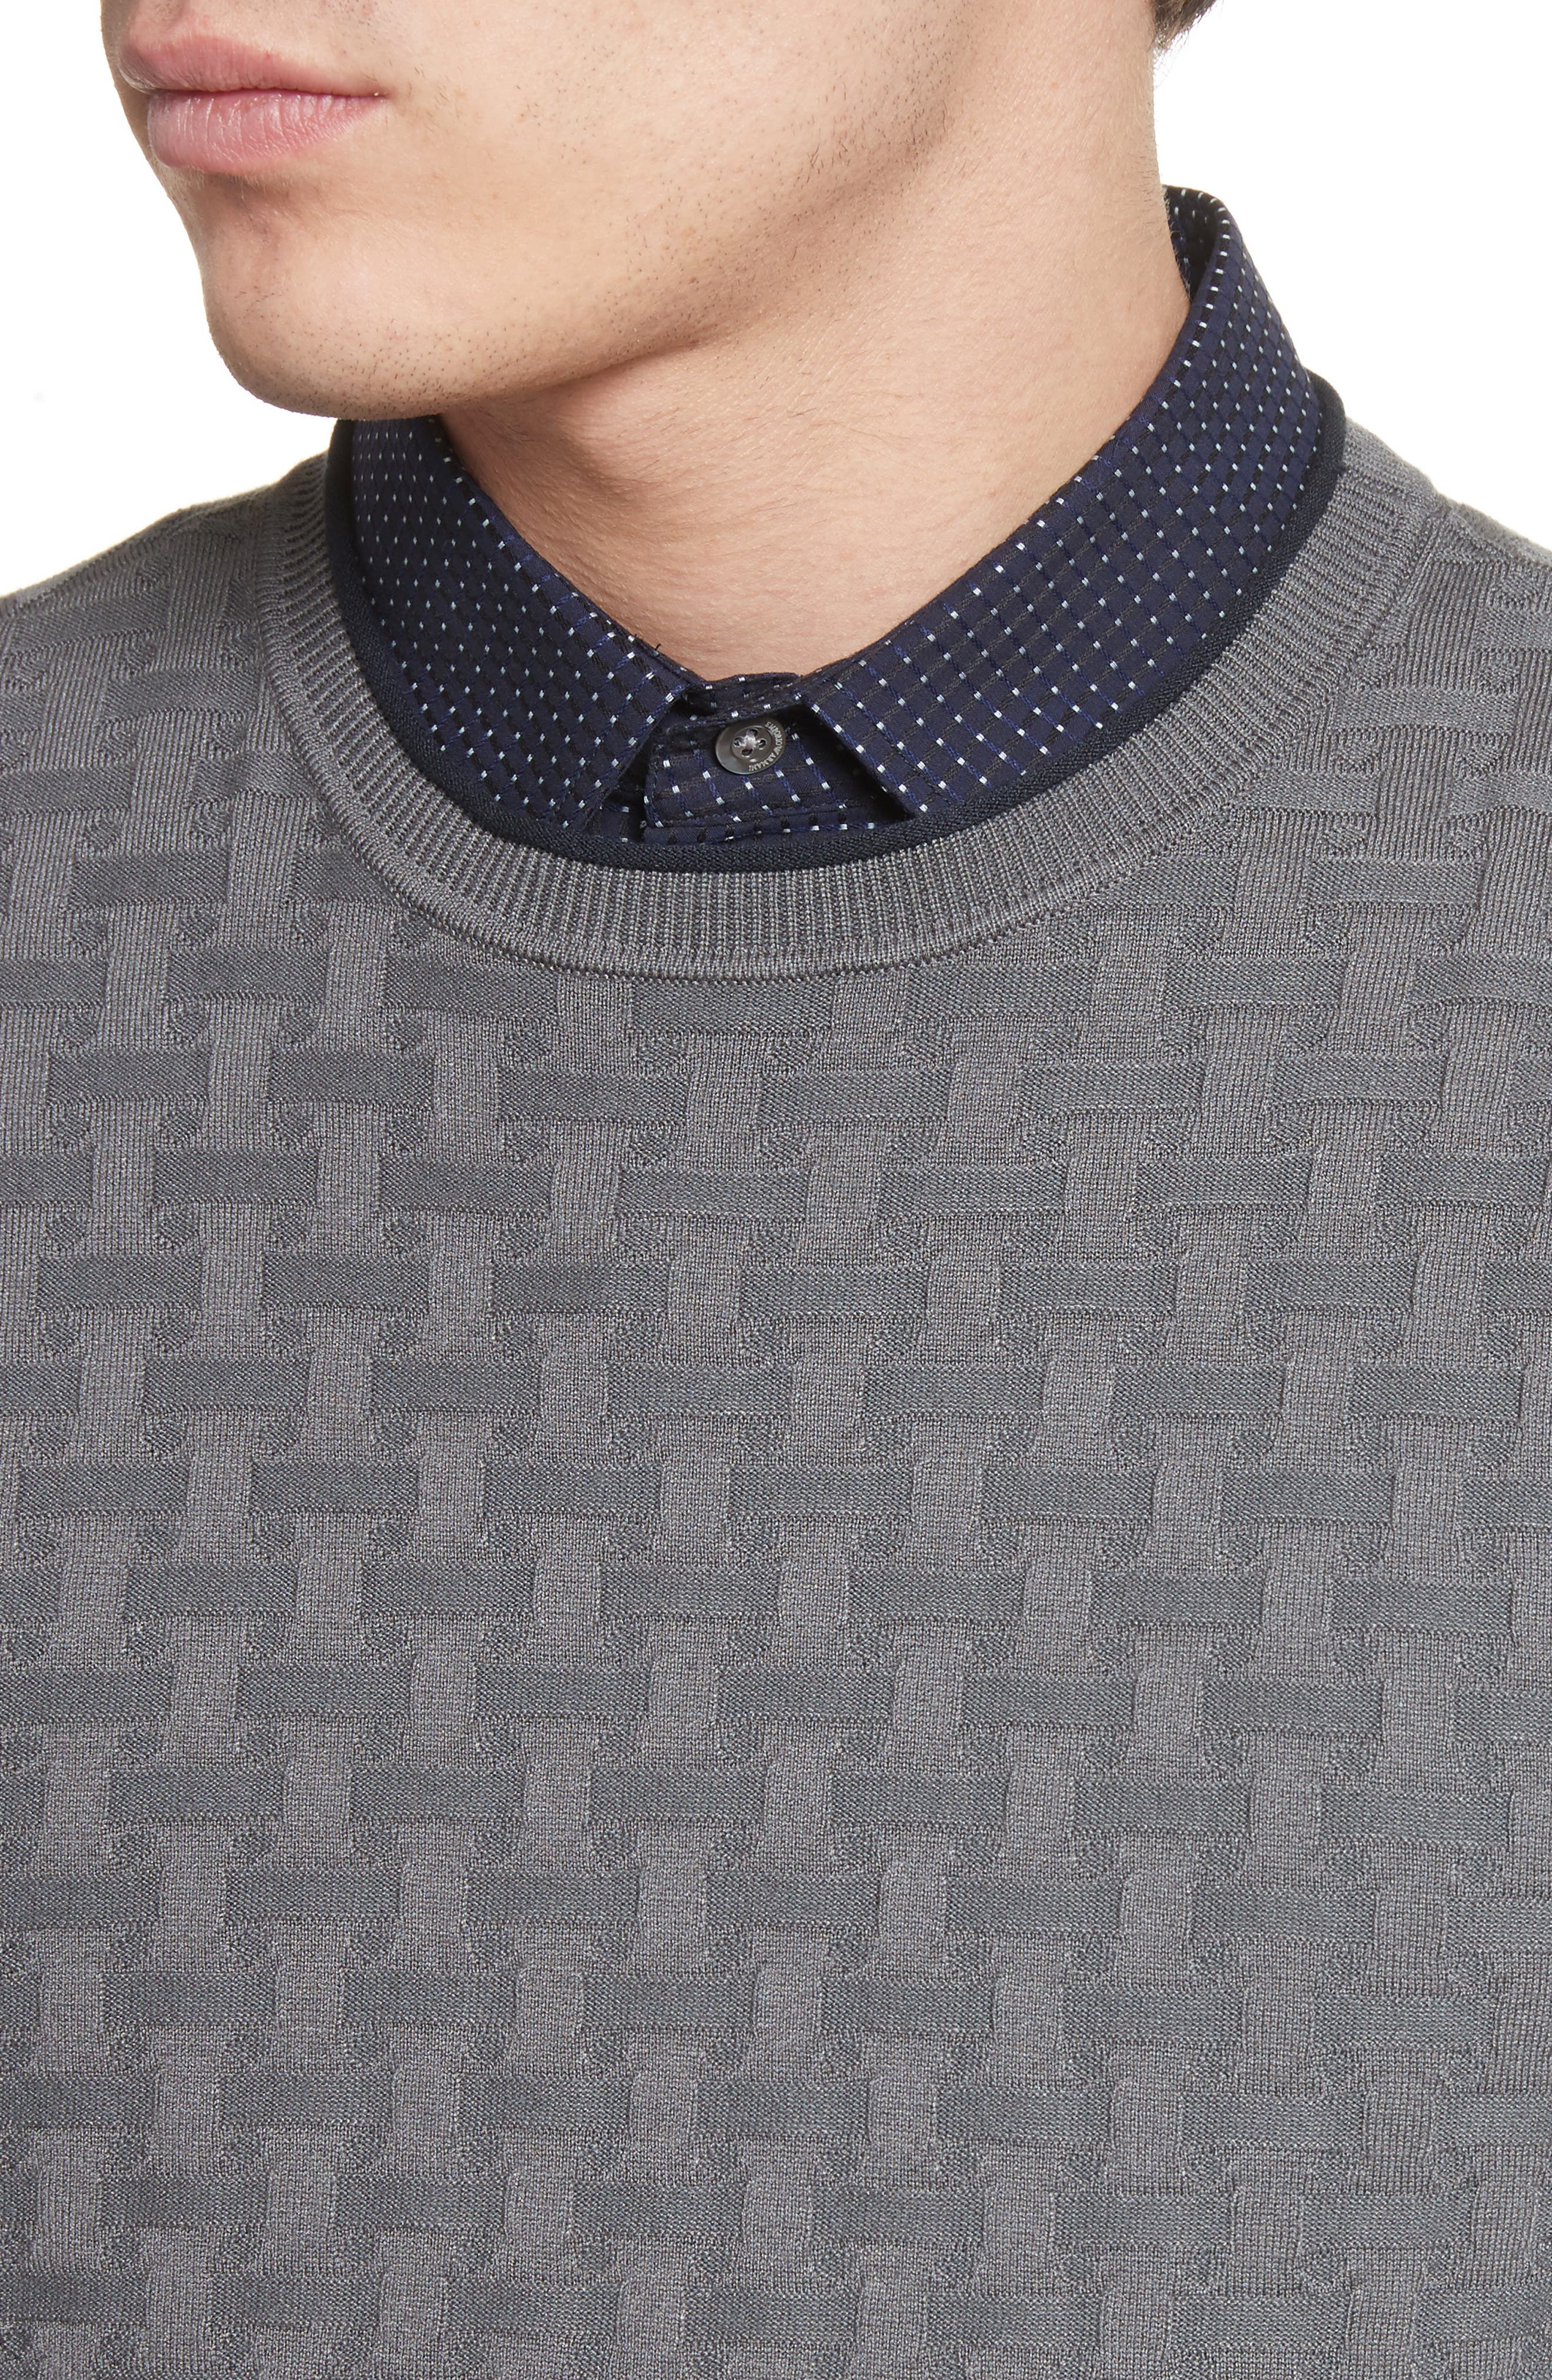 Slim Fit Woven Links Sweater,                             Alternate thumbnail 4, color,                             Pietra